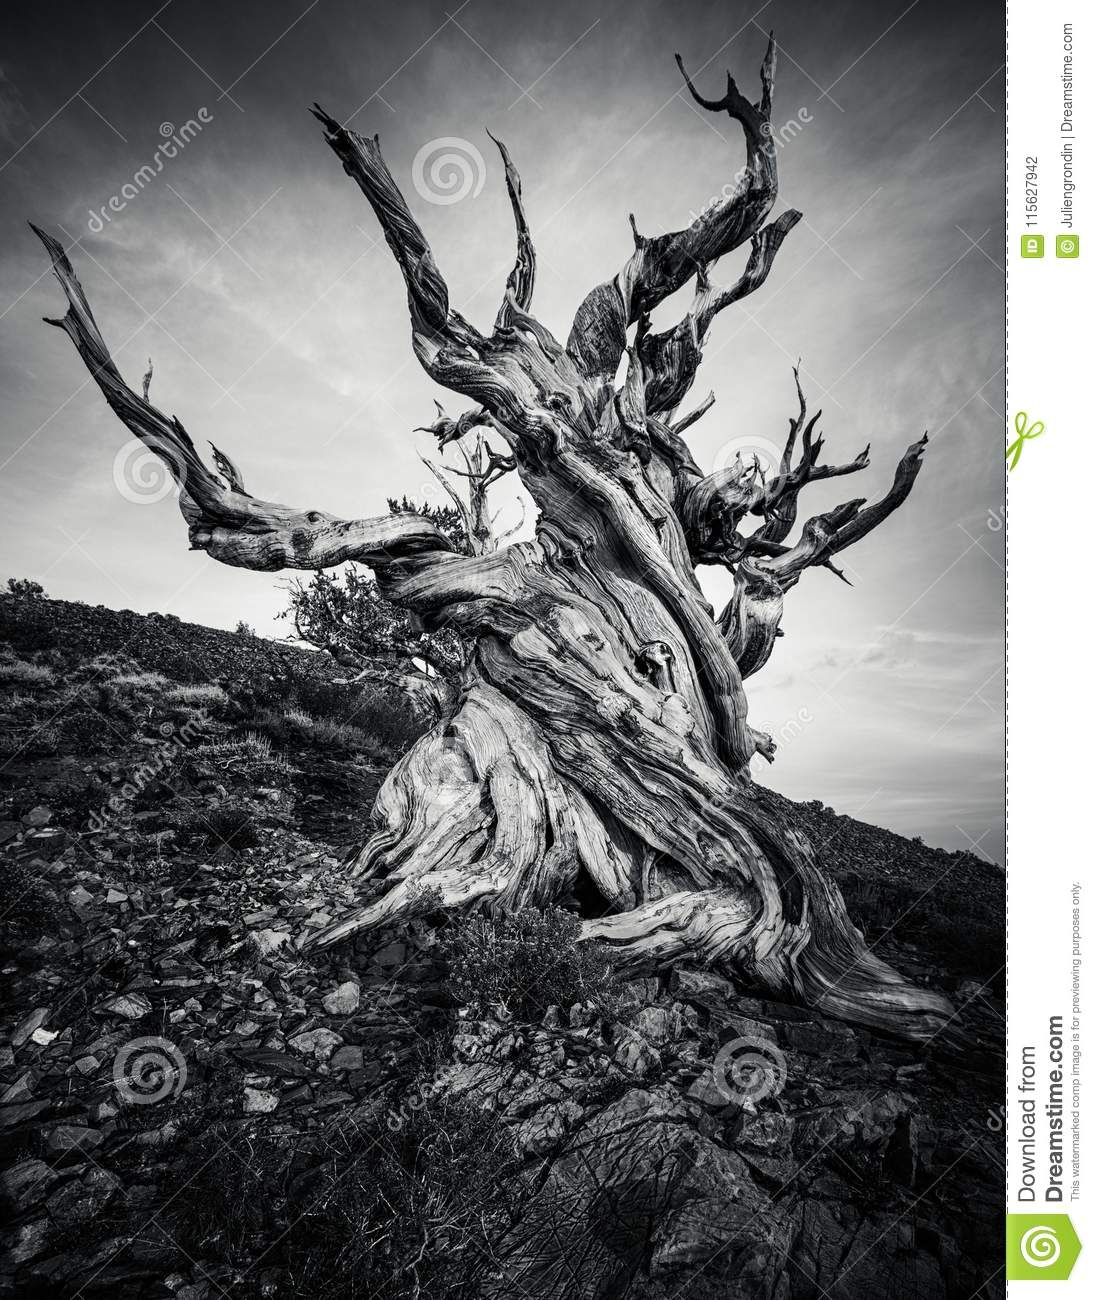 Bristlecone Pine Forest in the white mountains, eastern California, USA